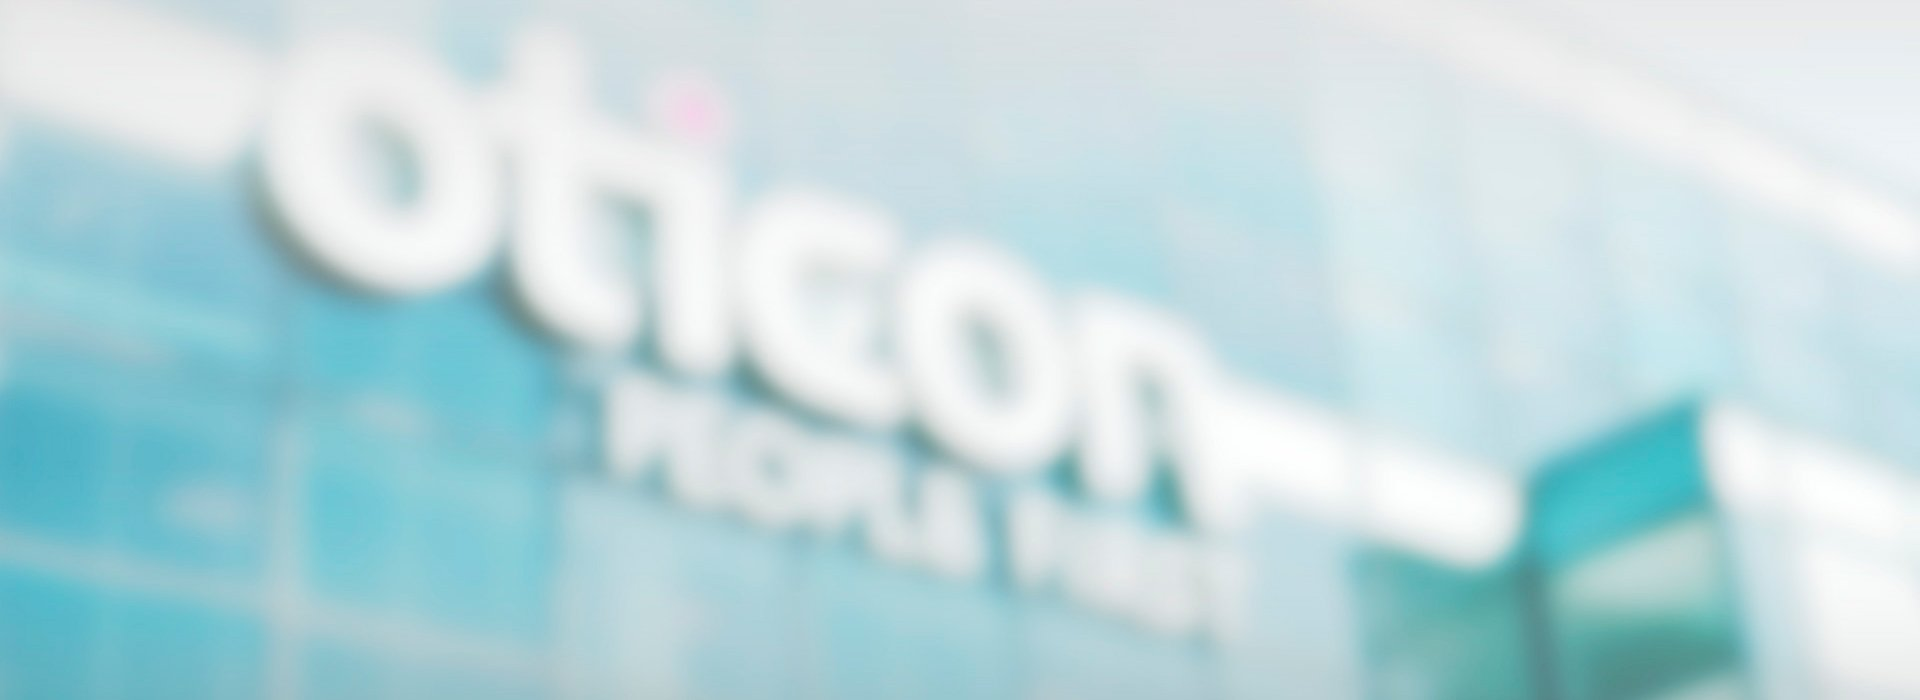 blurry oticon logo